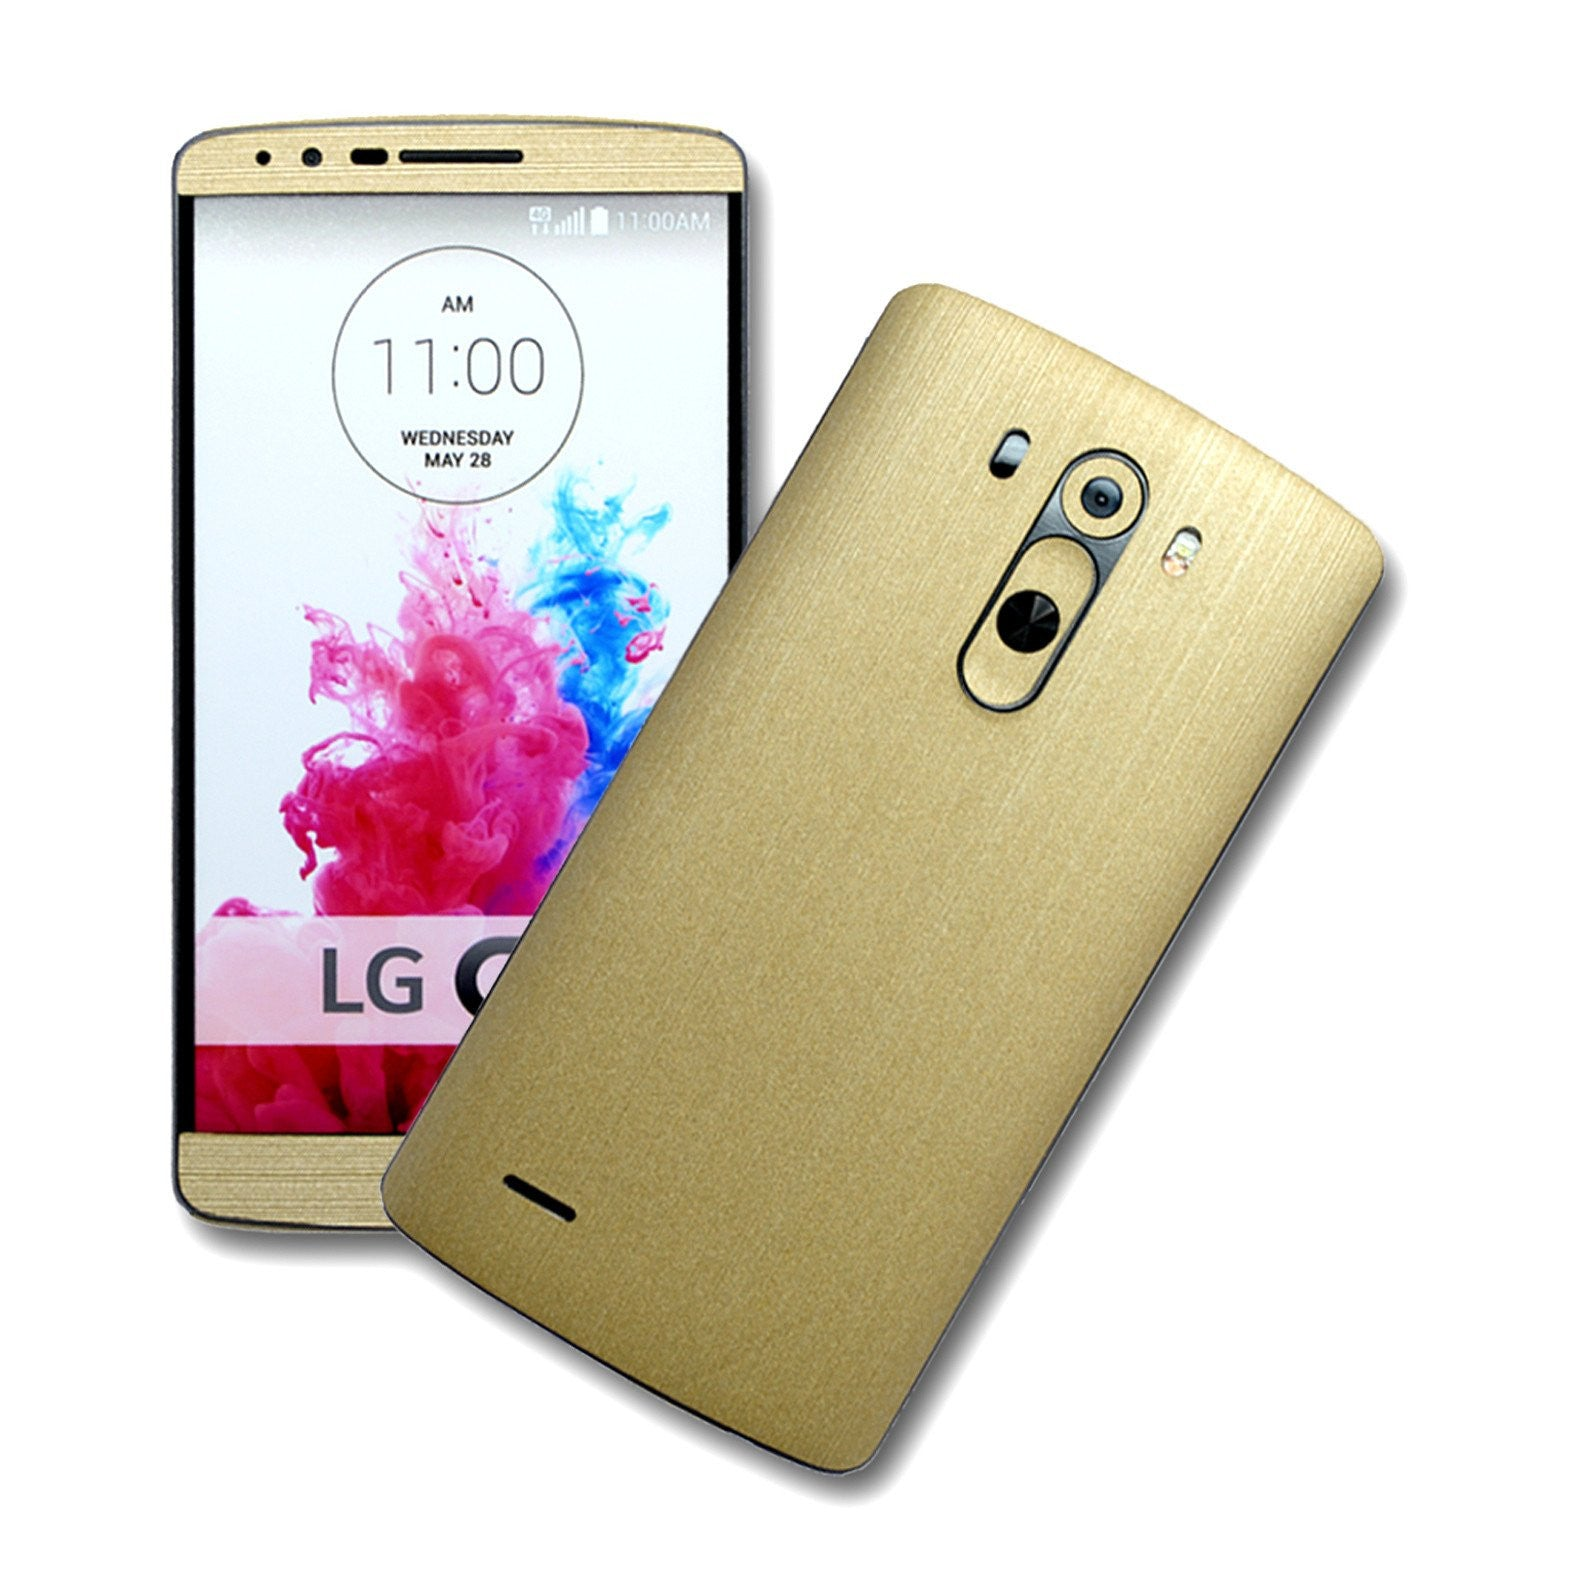 LG G3 Brushed GOLD Sticker Skin Wrap Cover Decal